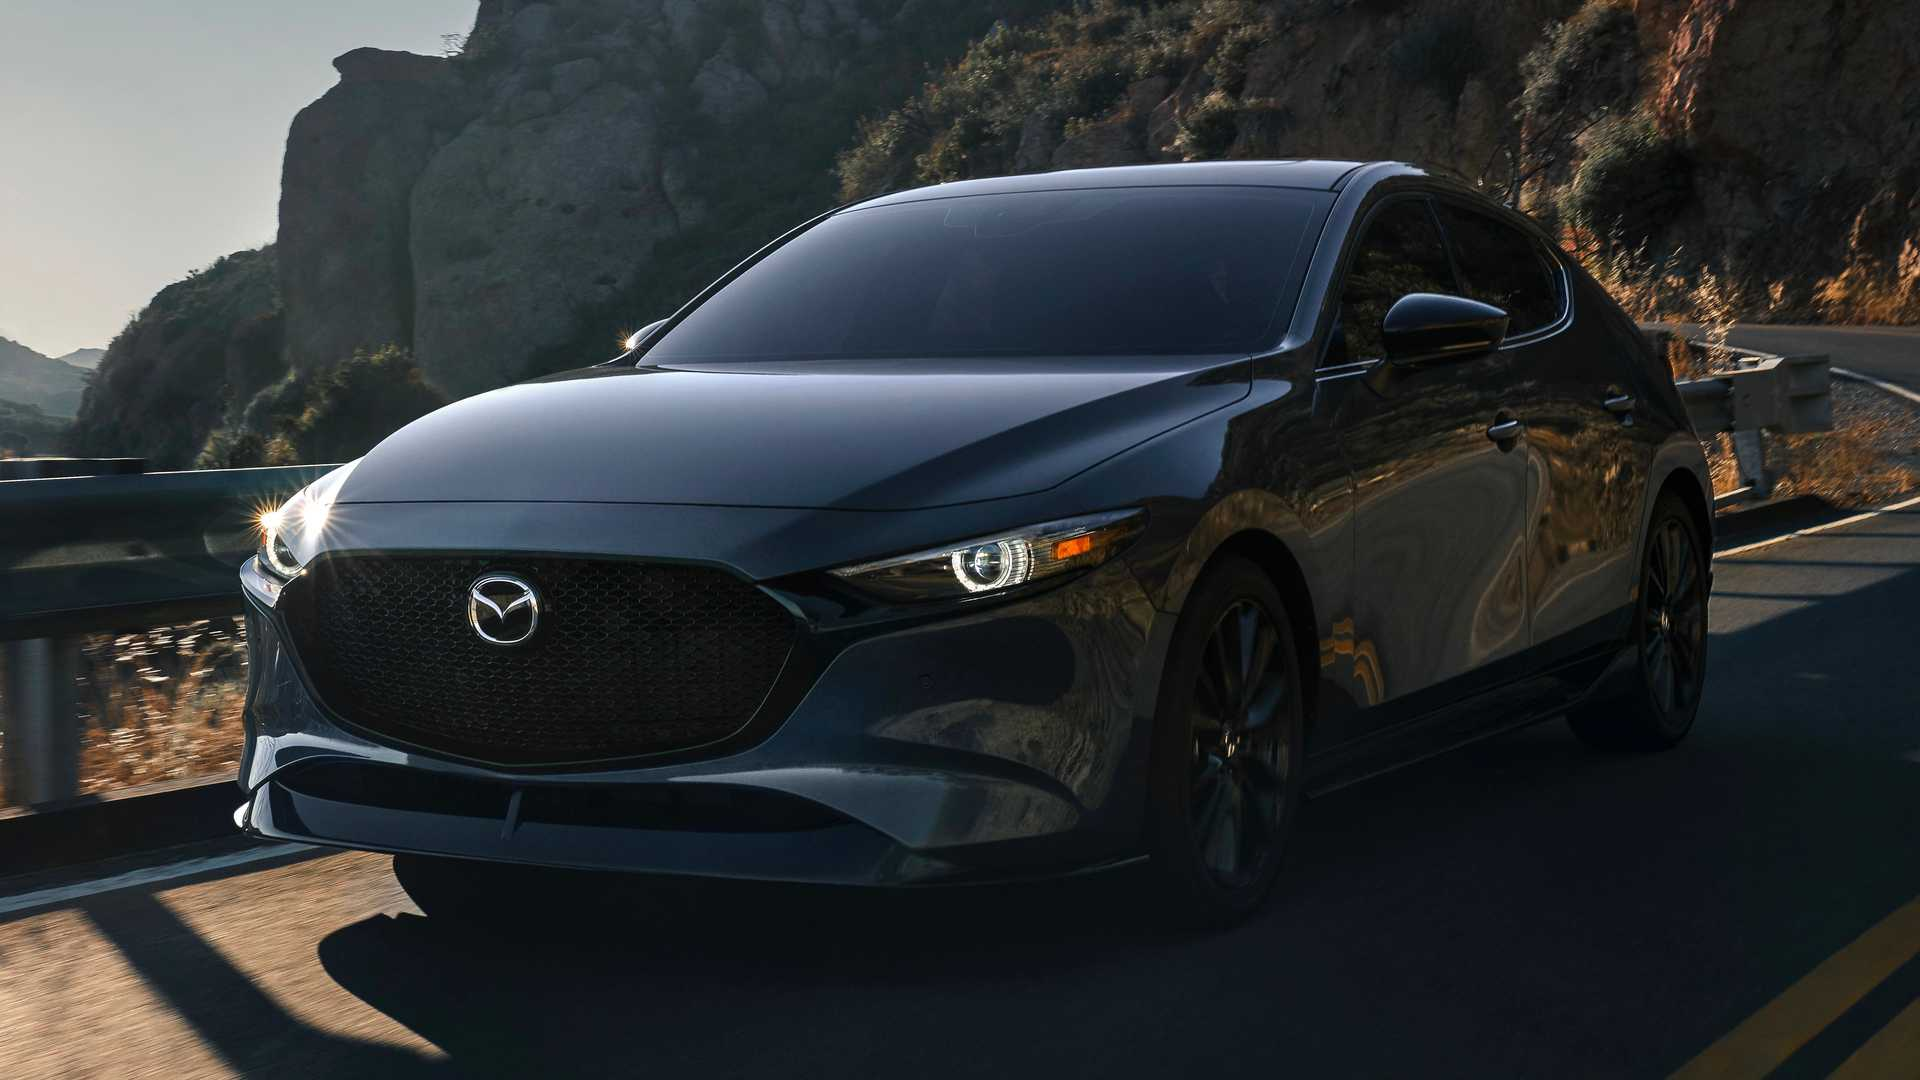 2021 mazda3 sedan with turbo power priced from 29900